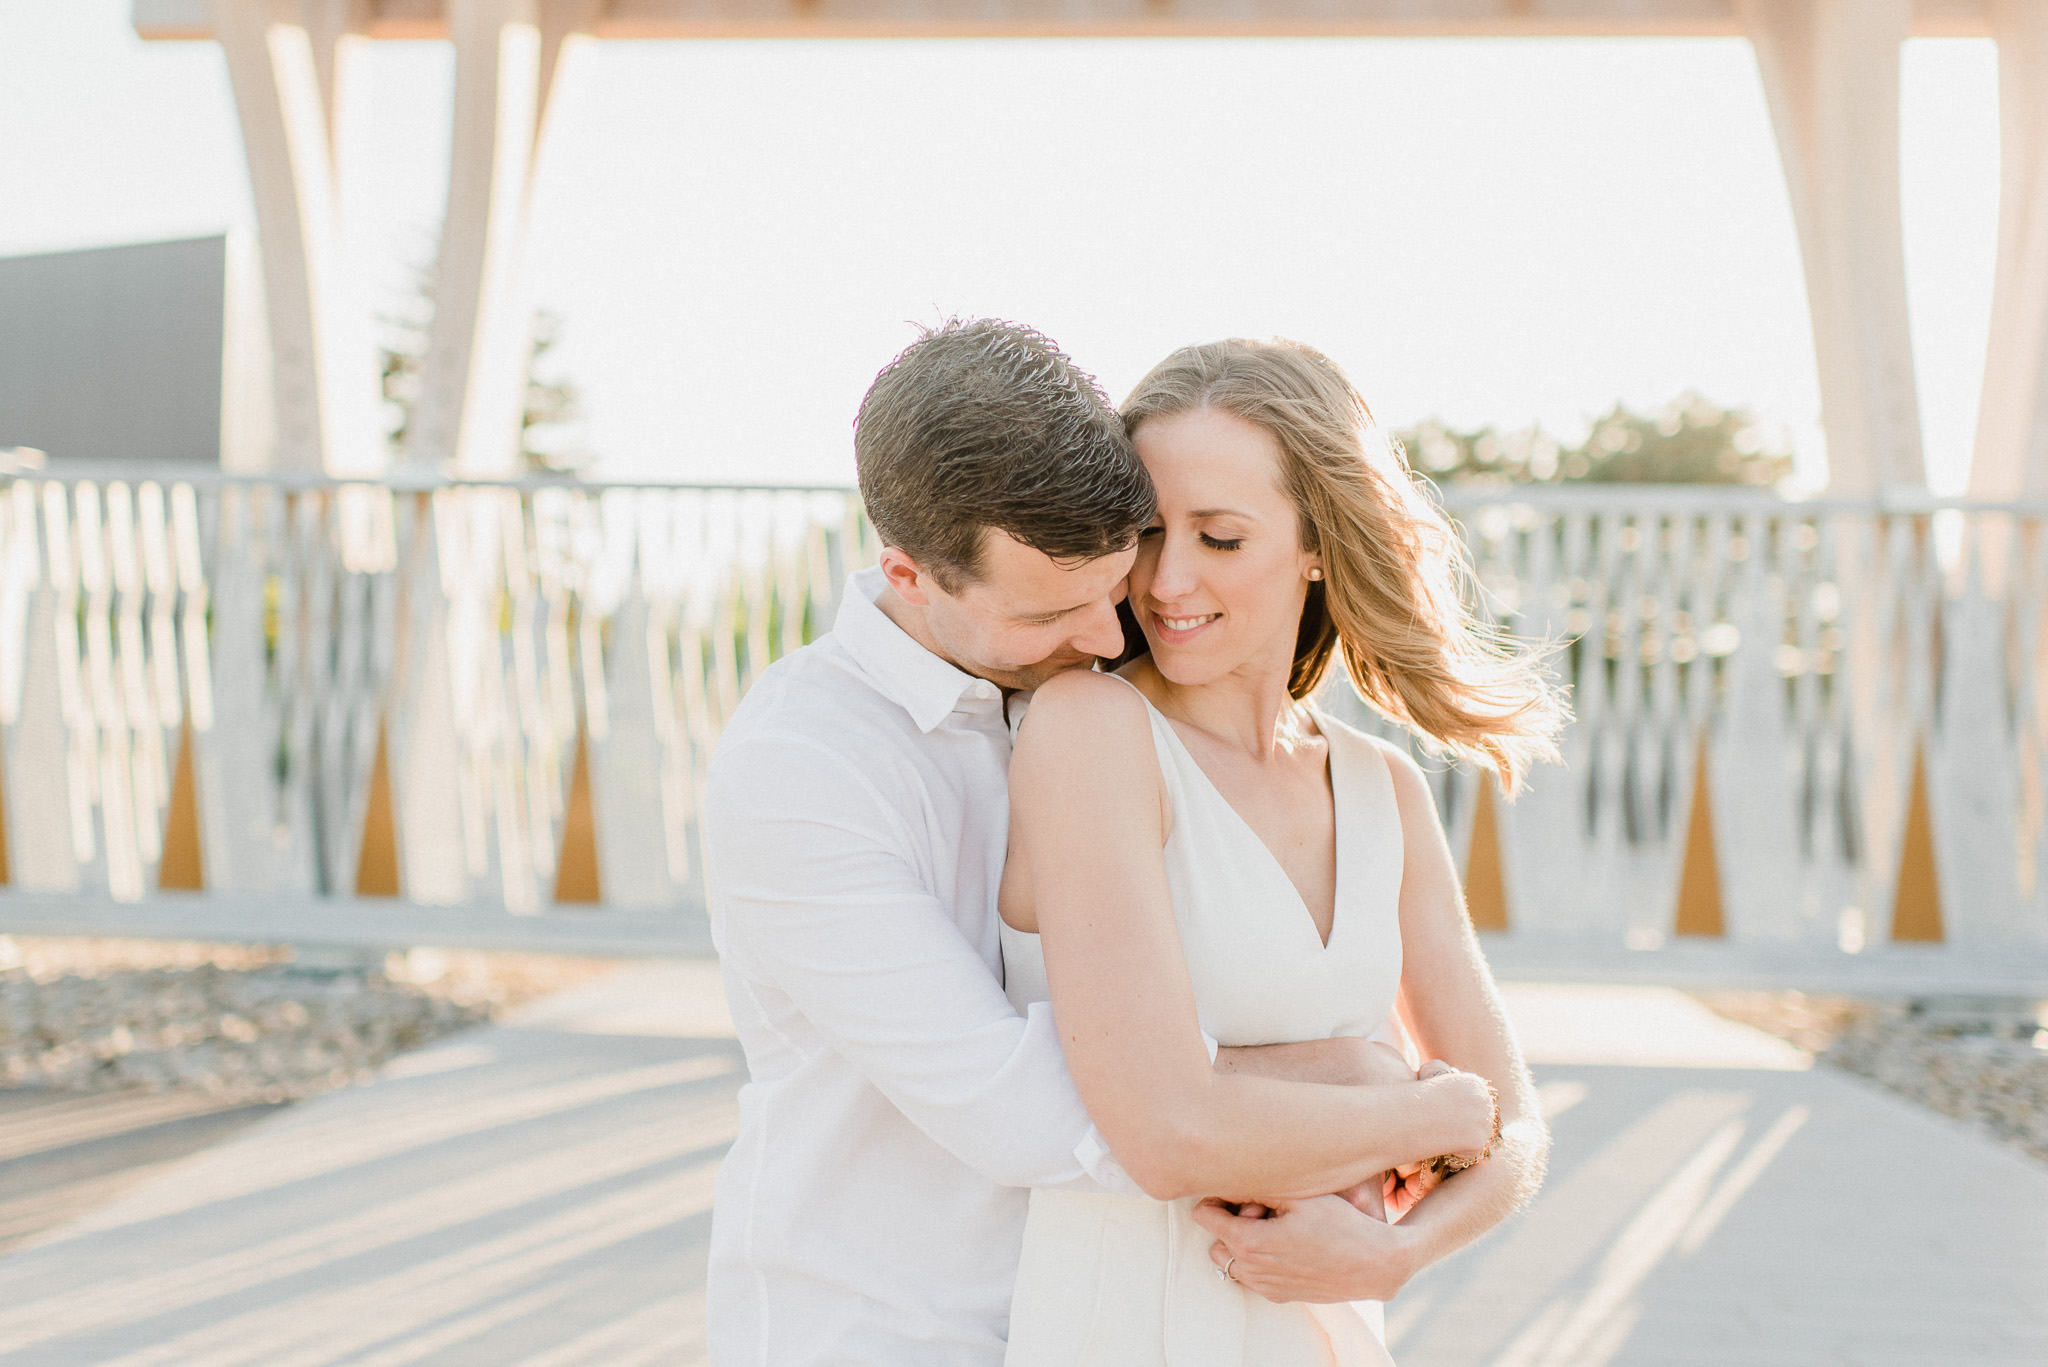 Toronto Lakeshore Engagement Session by Jenn Kavanagh Photography